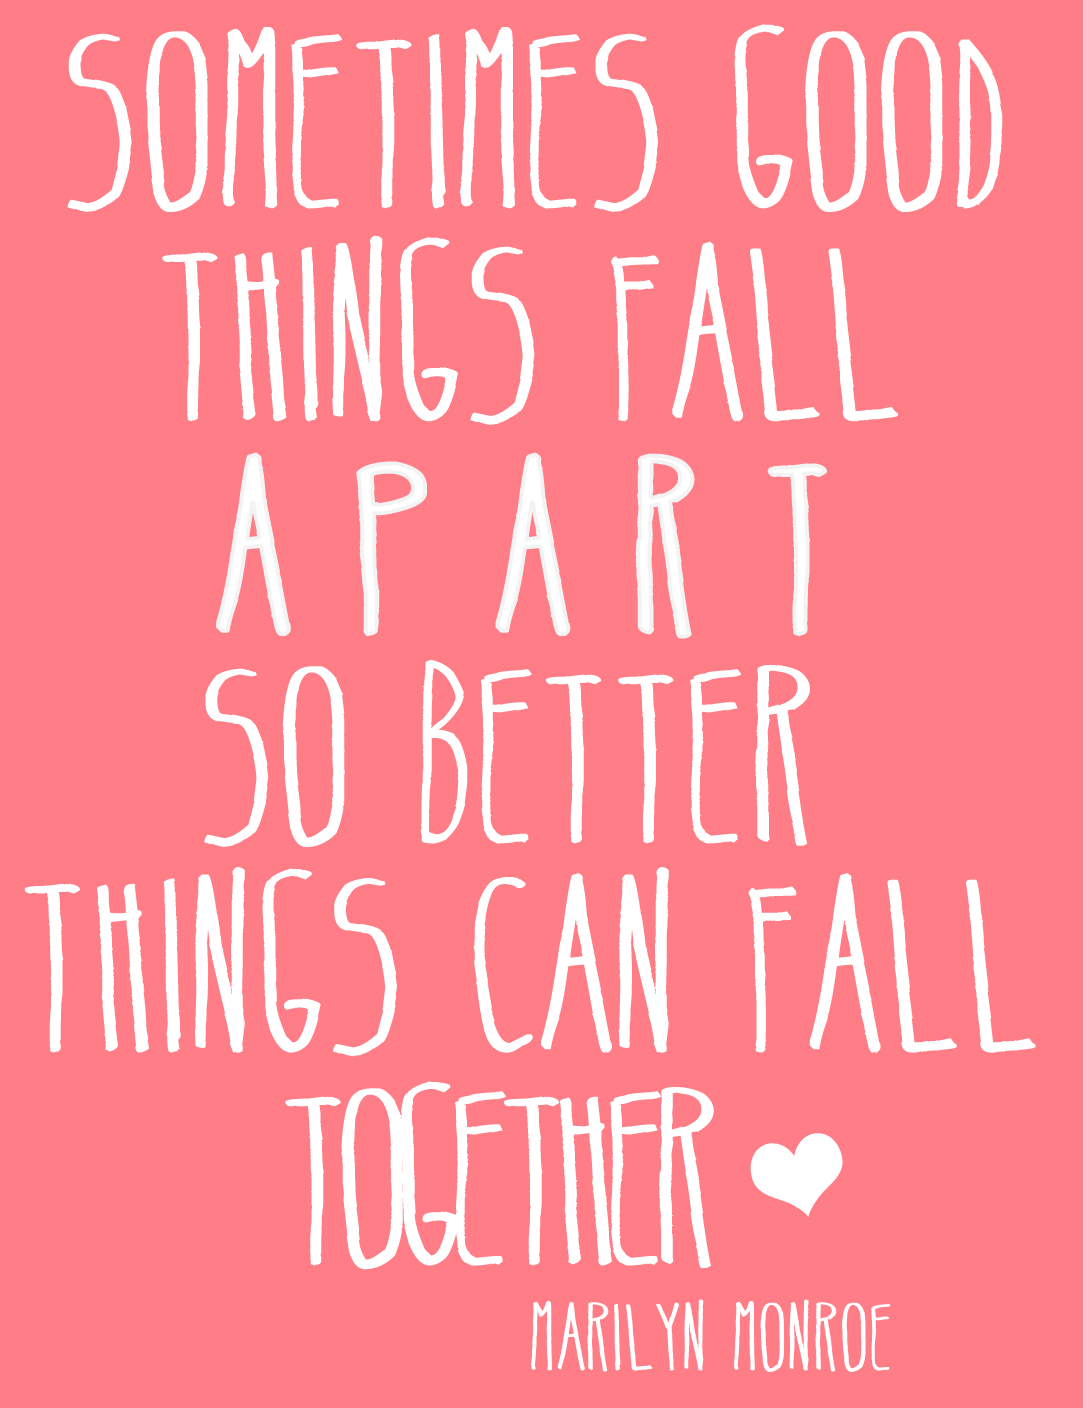 Quotes About Life Sometimes Good Things Fall Apart So Better Things